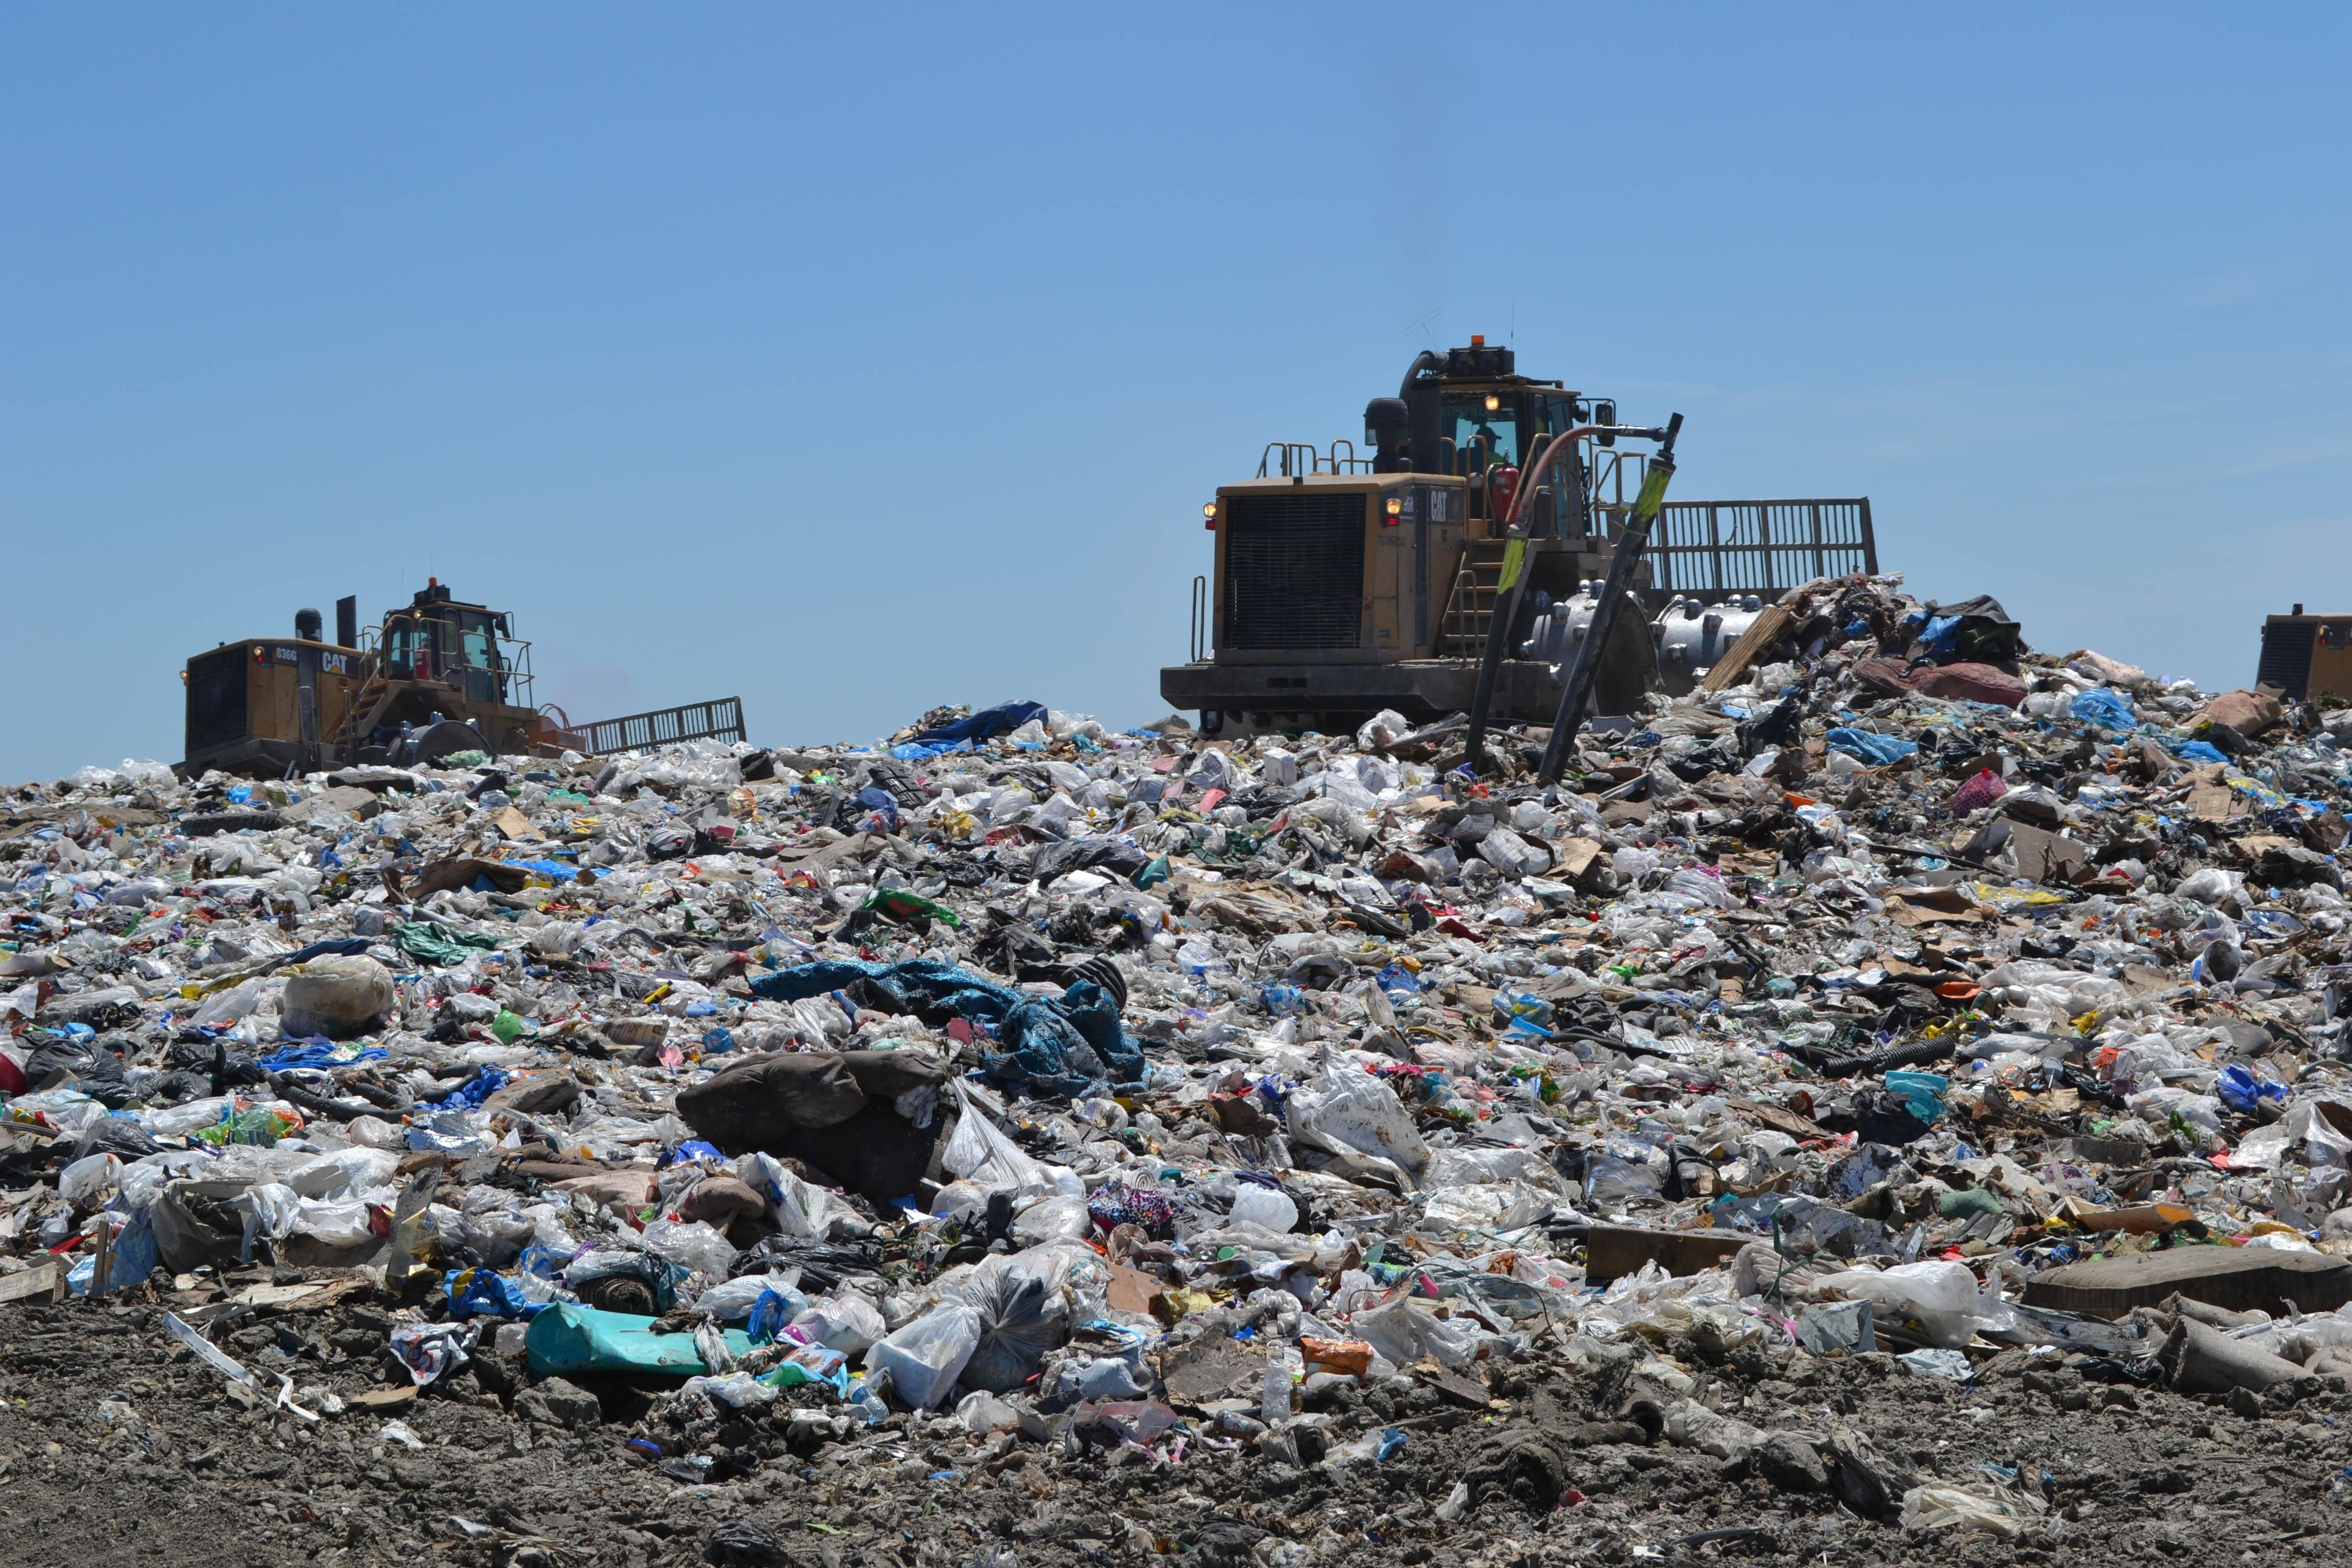 About 5,000 tons of trash from Chicago and the surrounding is are dumped every day at a landfill in Livingston County.